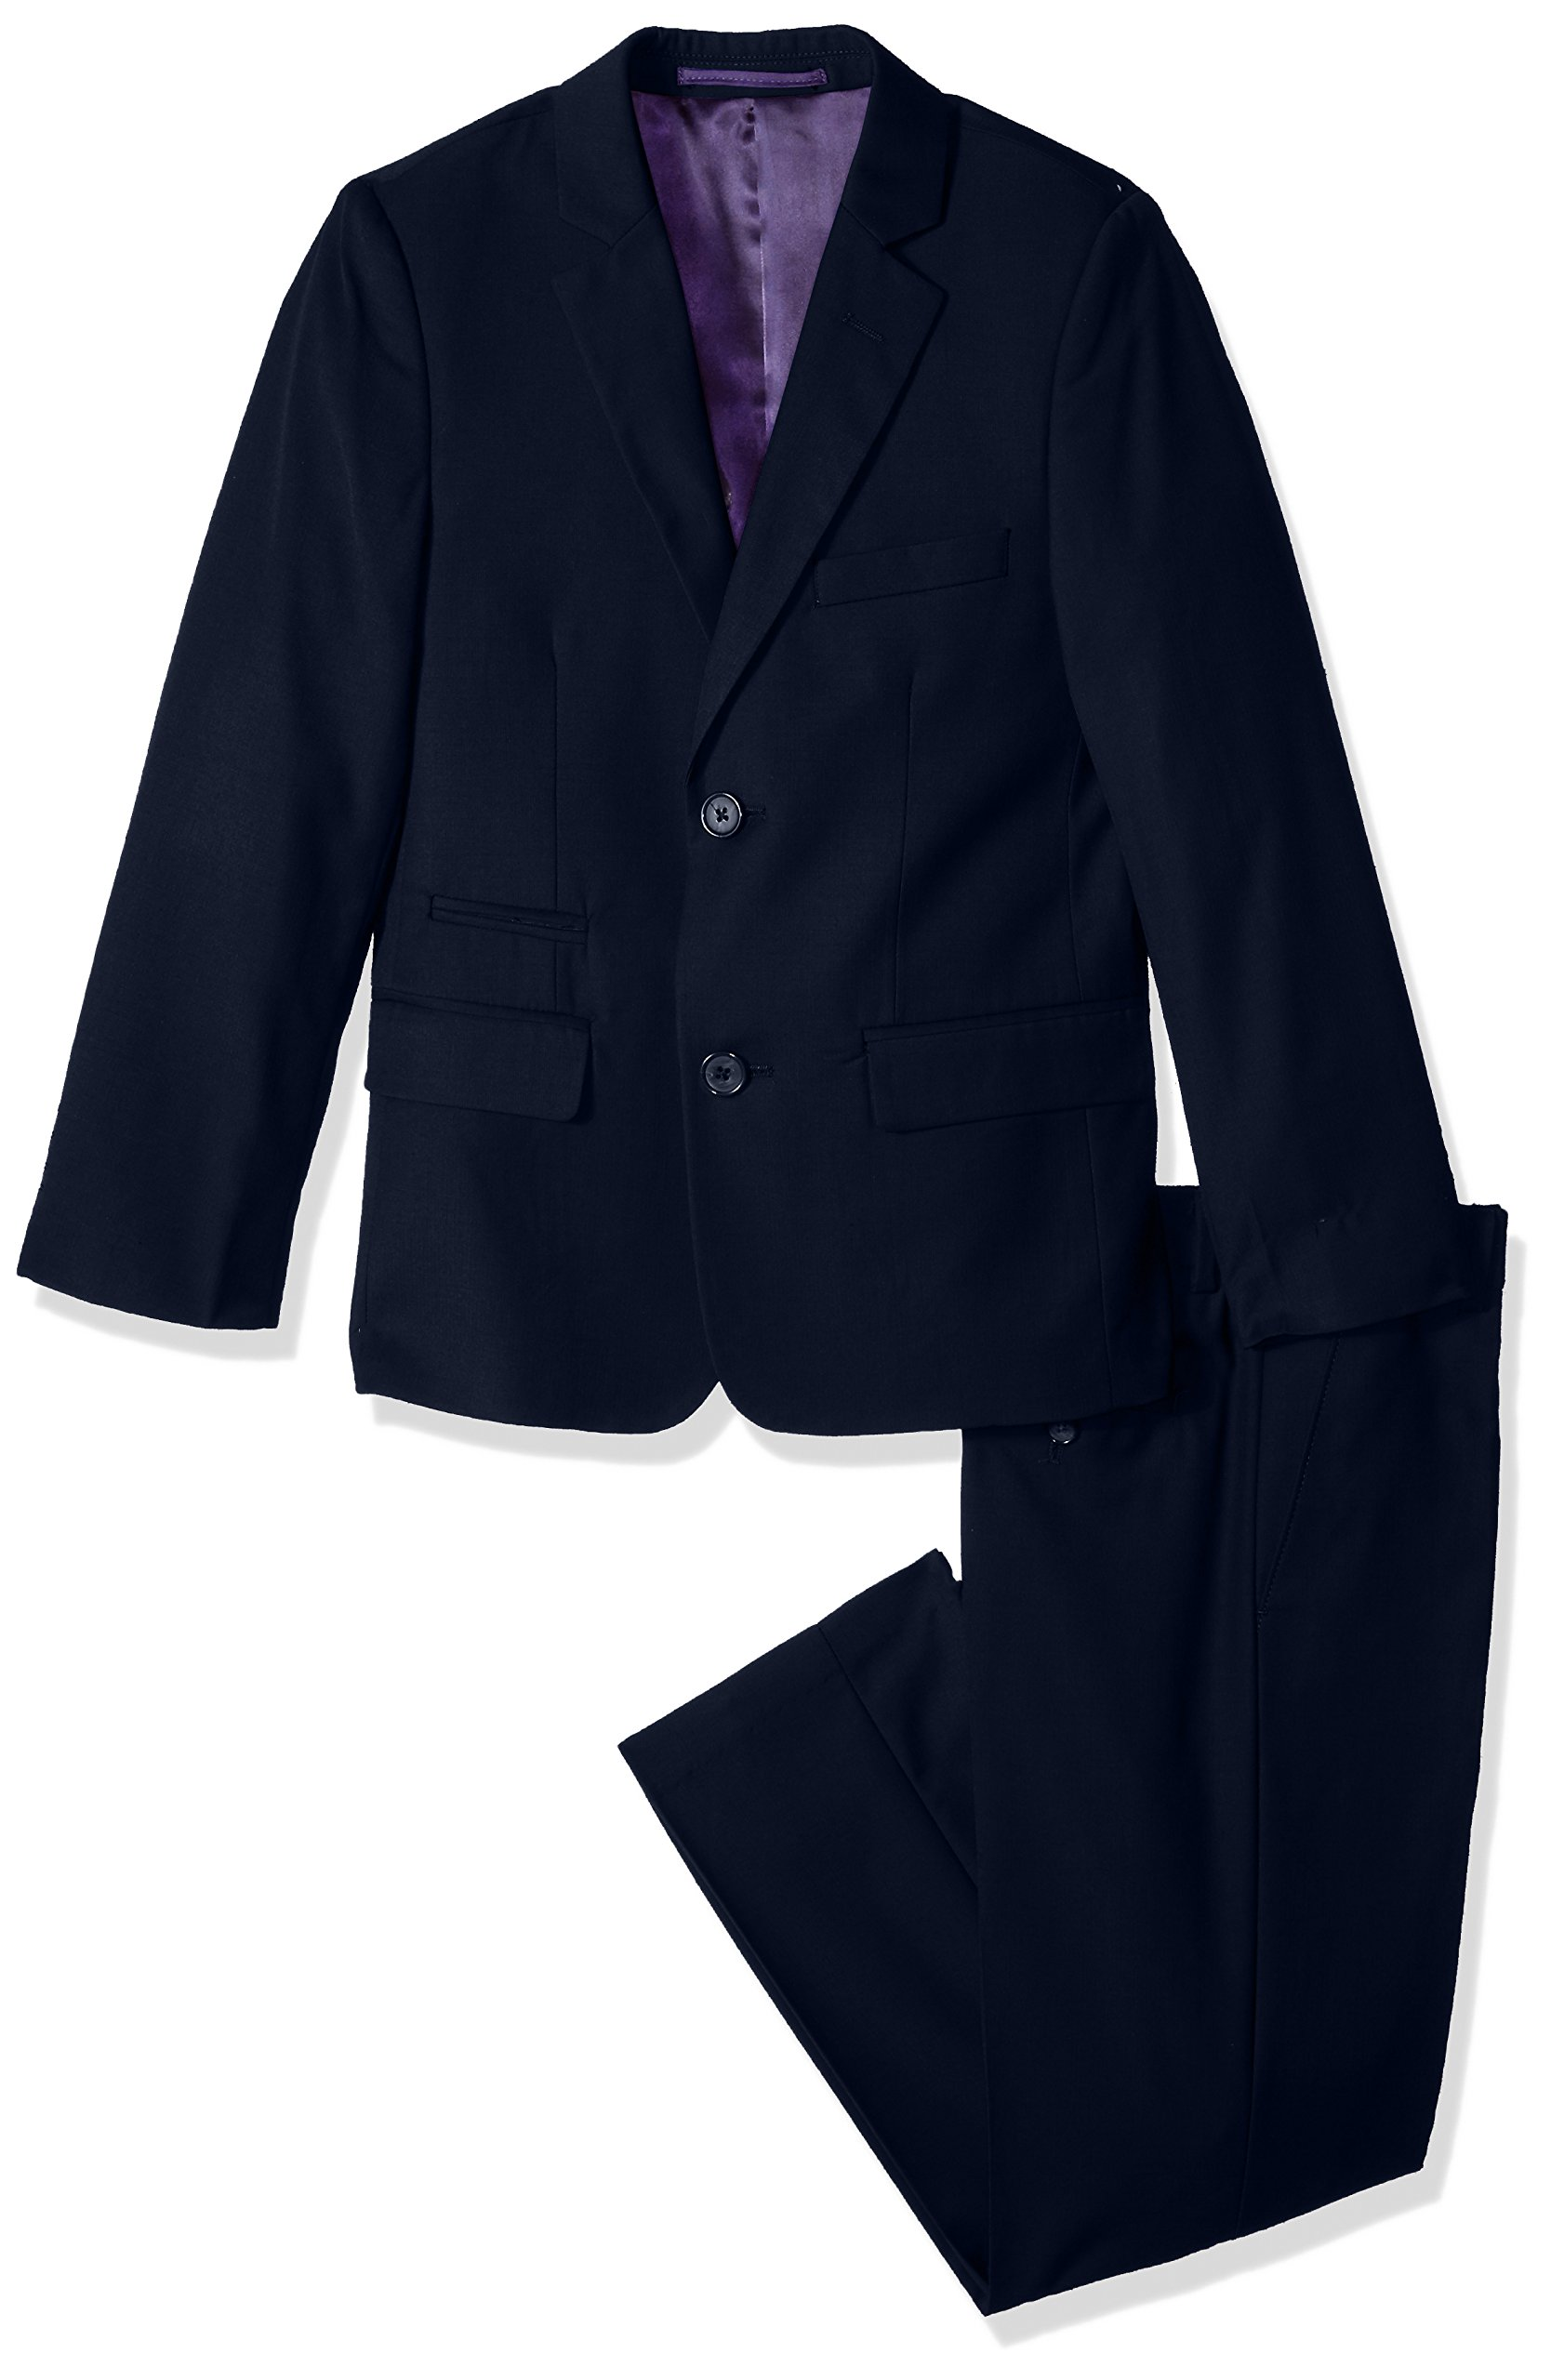 Isaac Mizrahi Big Boys' 2Pc Slim Cut Wool Blend Suit, Navy, 14H